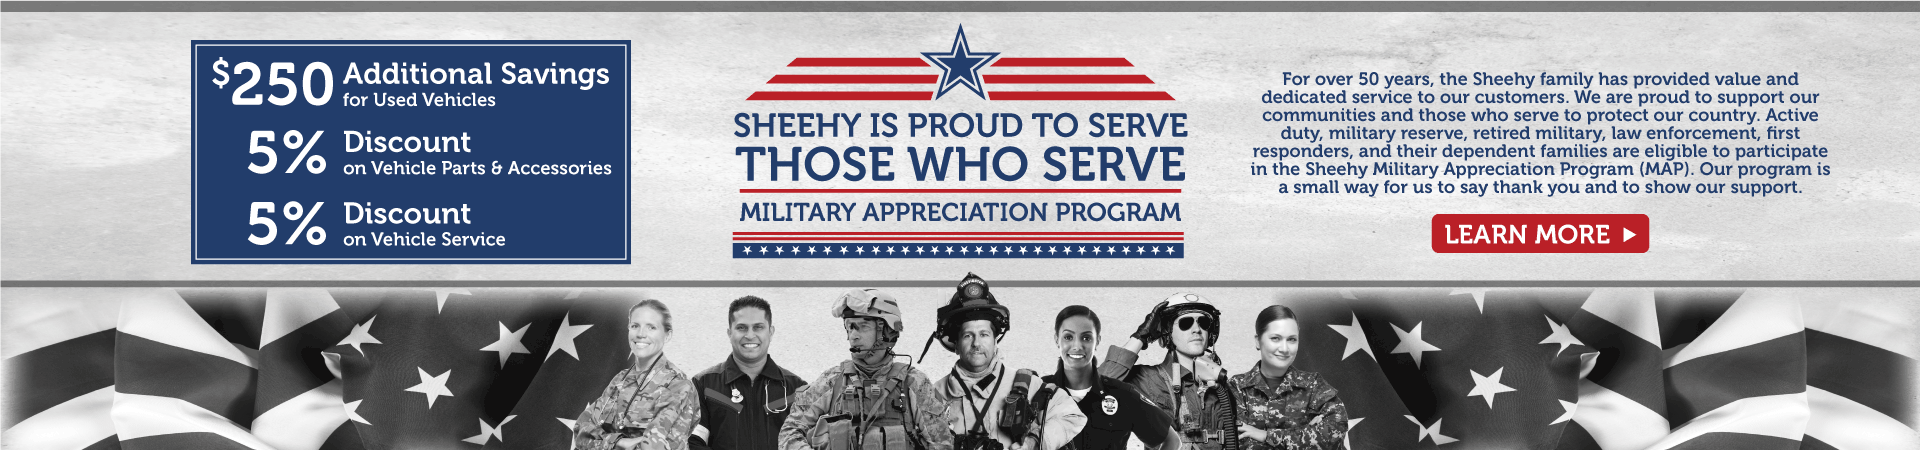 Sheehy Military Appreciation